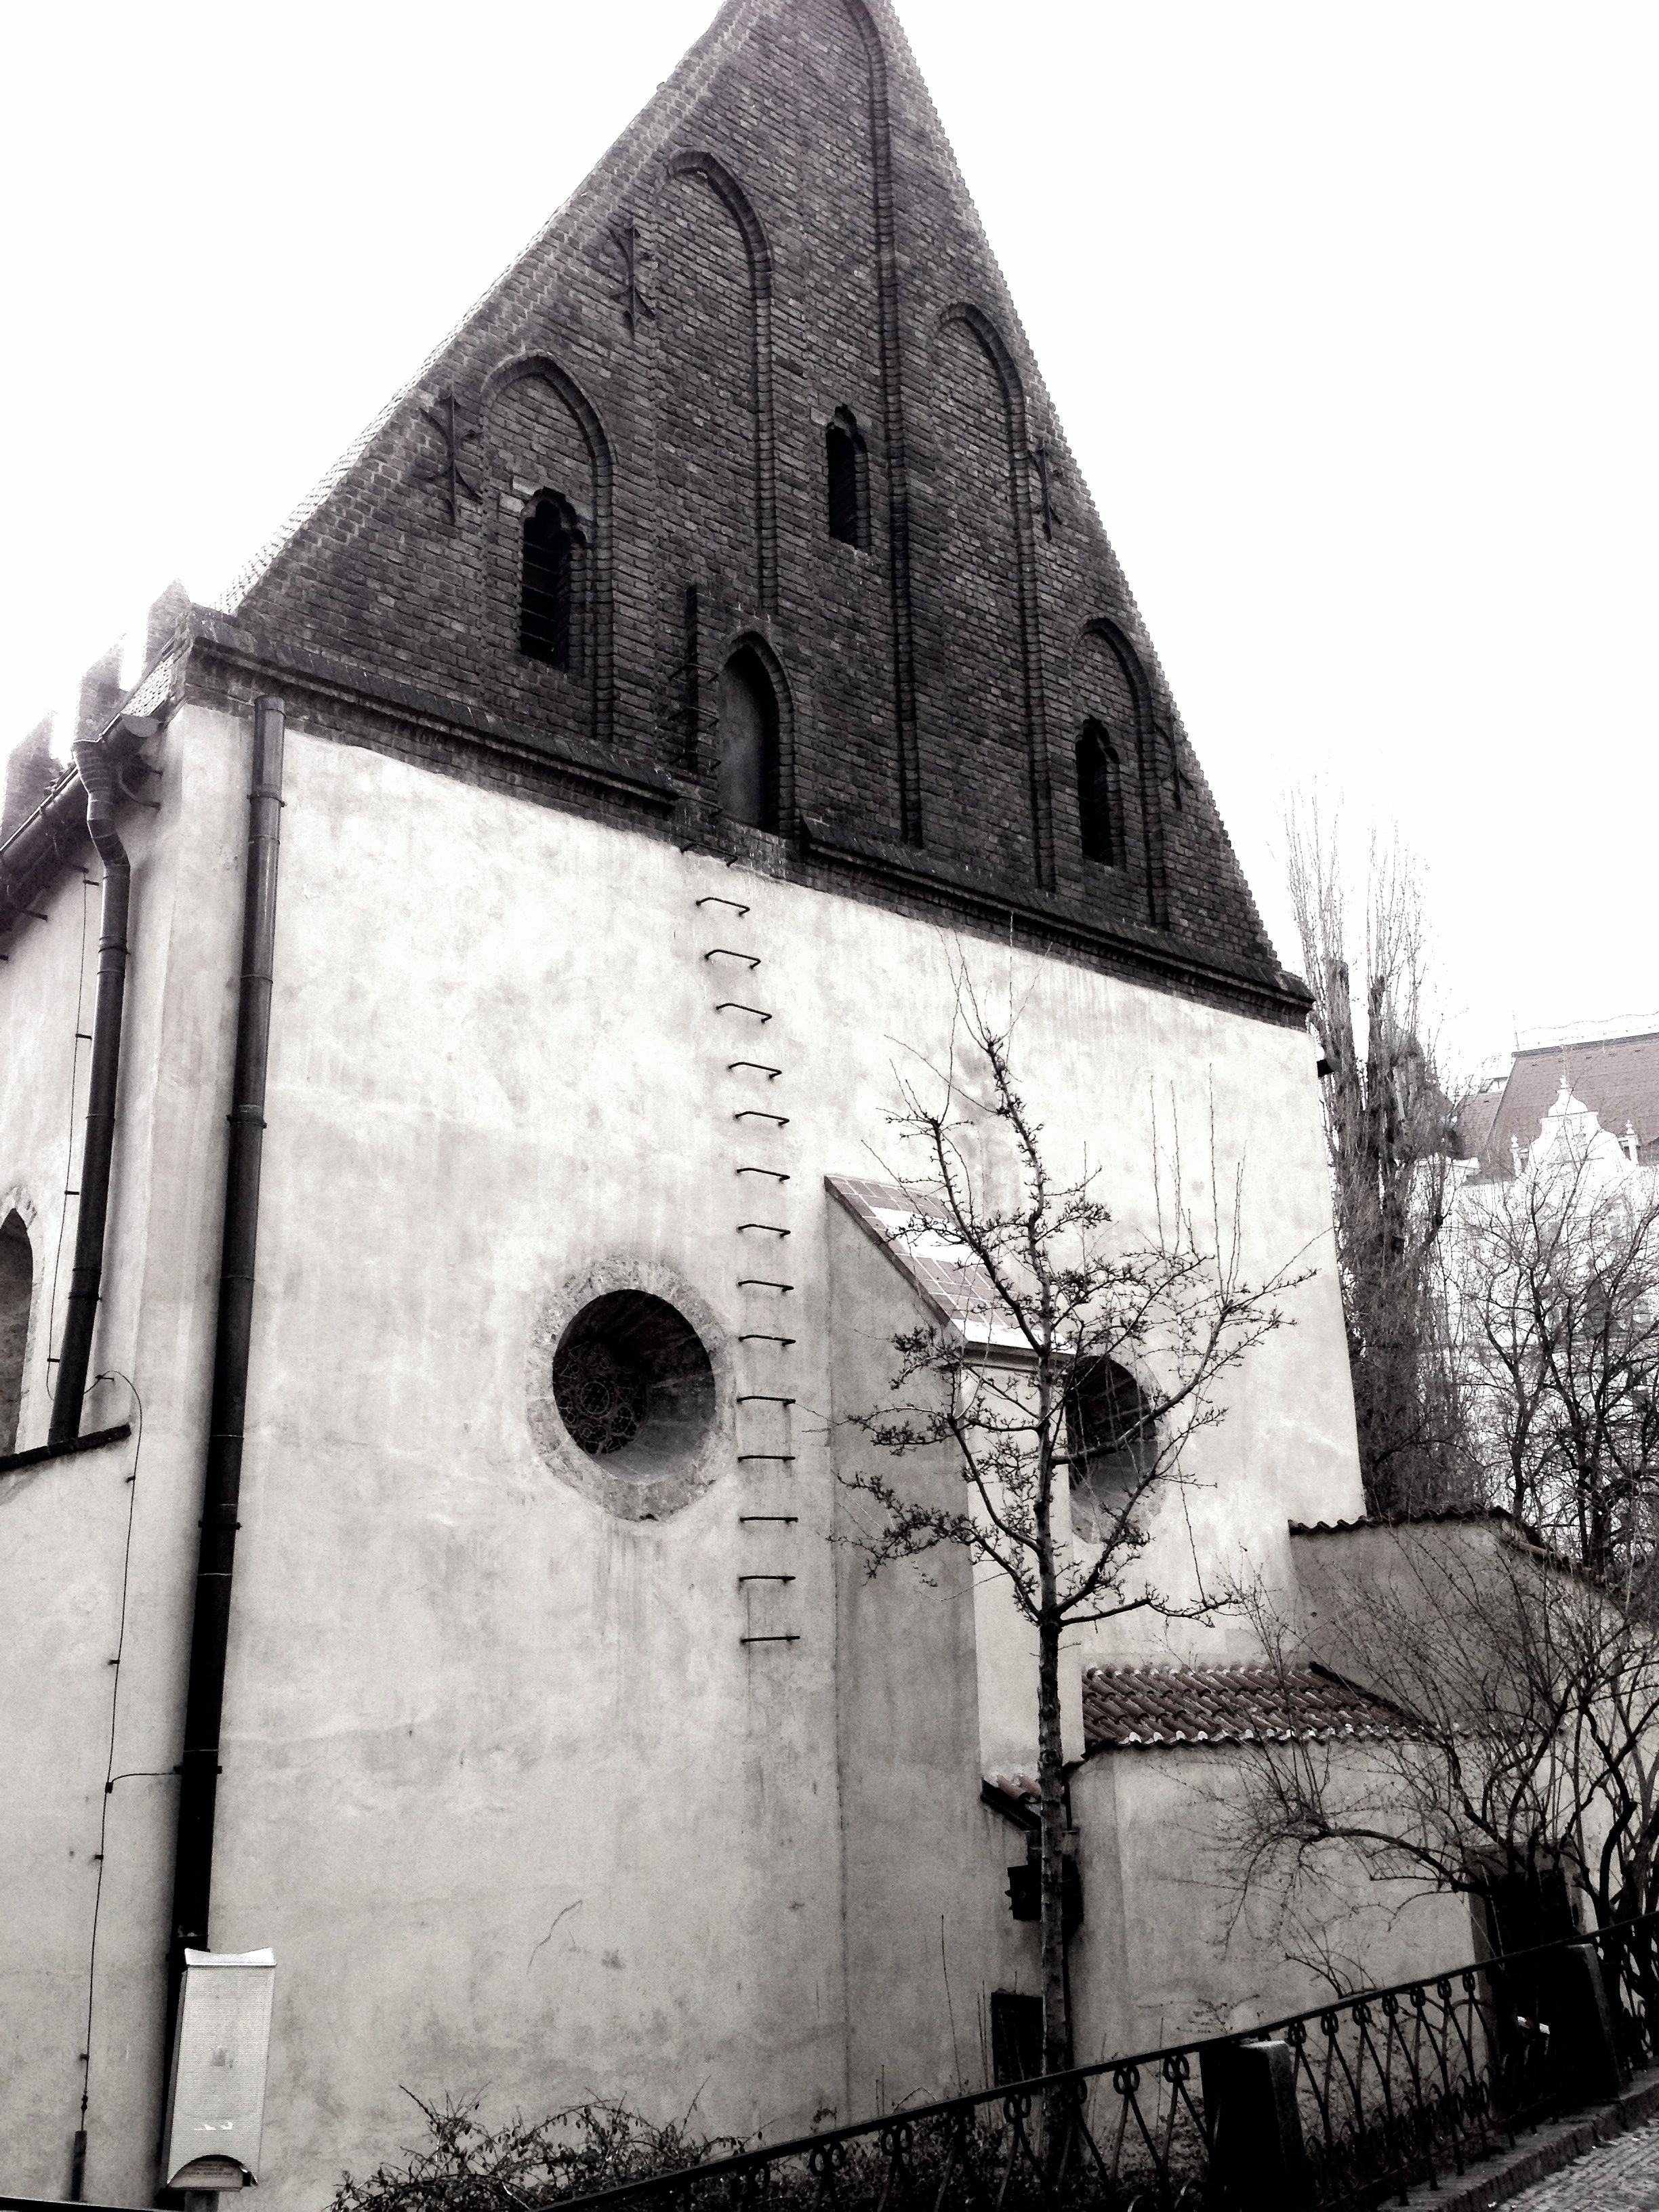 The Old New Synagogue - the attic is home of the Golem, they've removed the bottom 9 feet of the ladder to stop people from getting in.